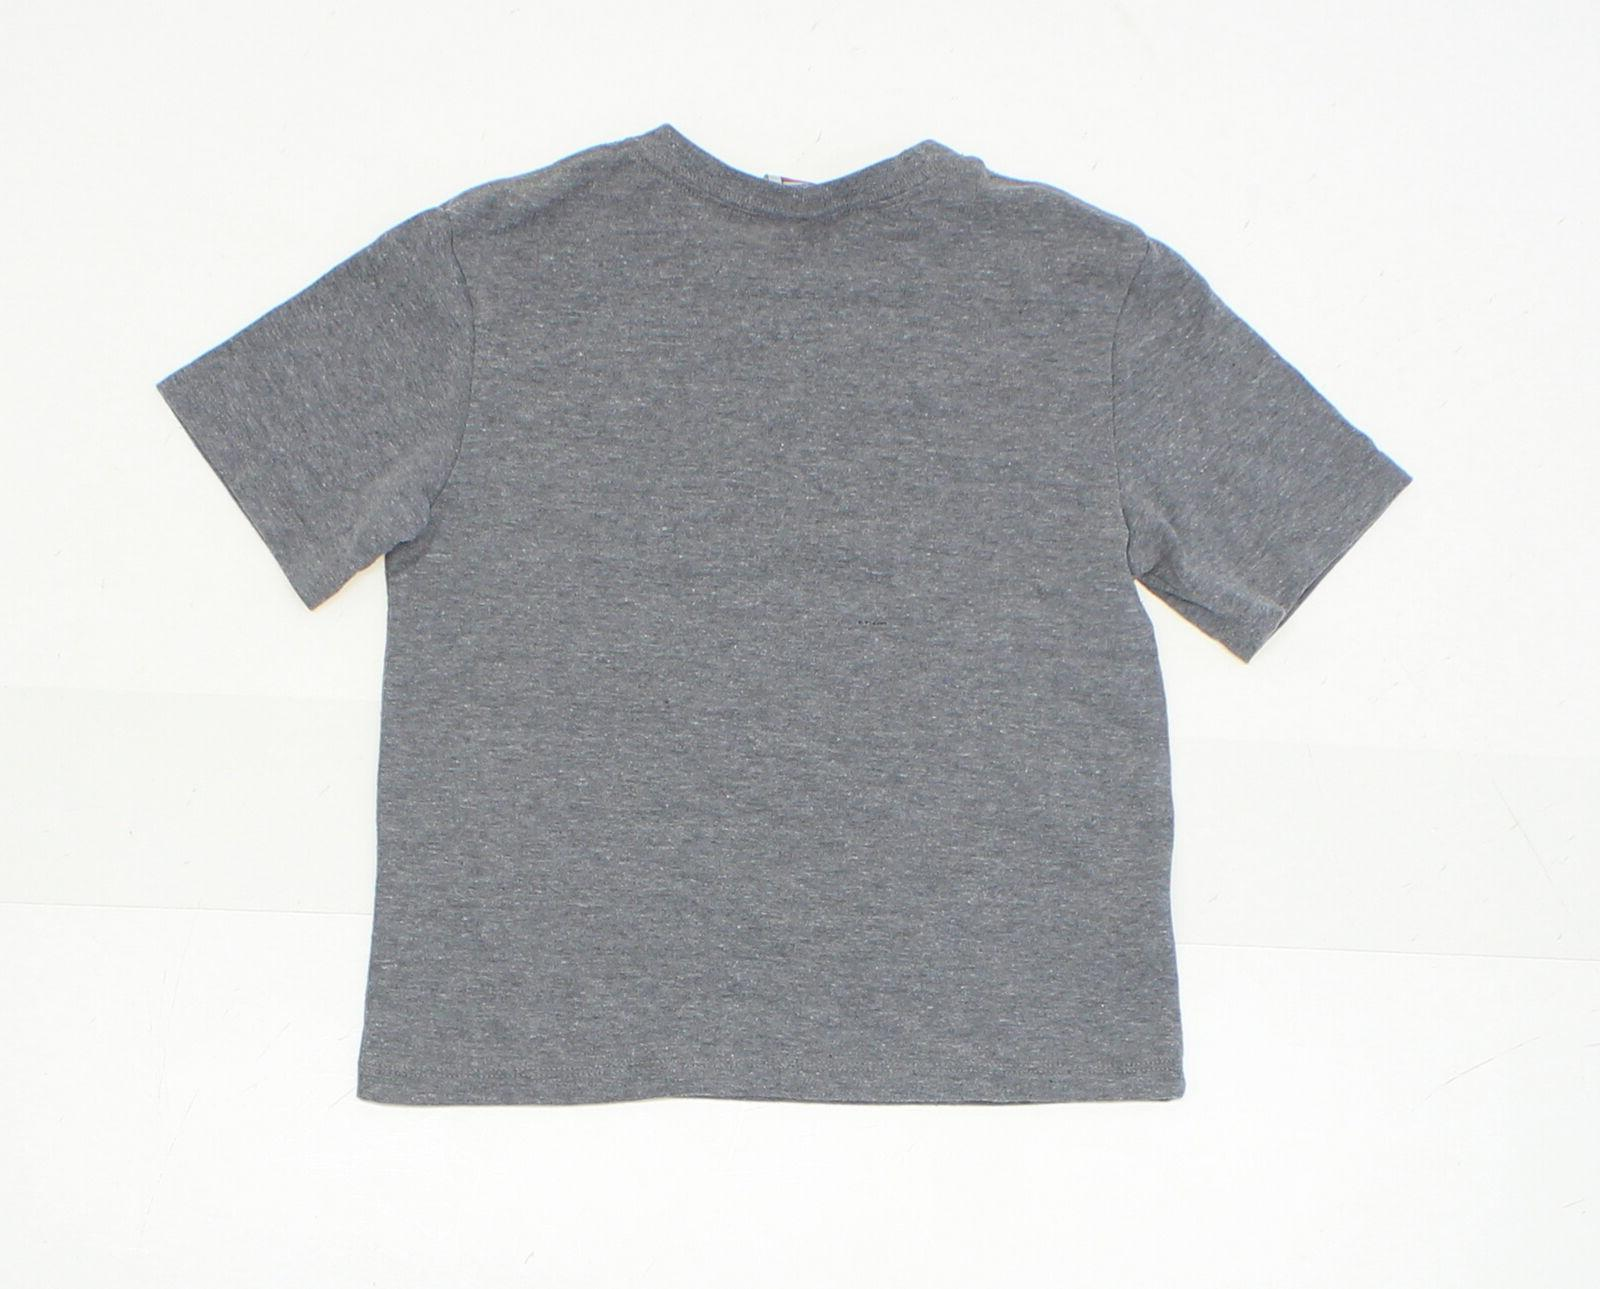 NWT Junk Food Youth Monopoly Graphic Tee Grey XS